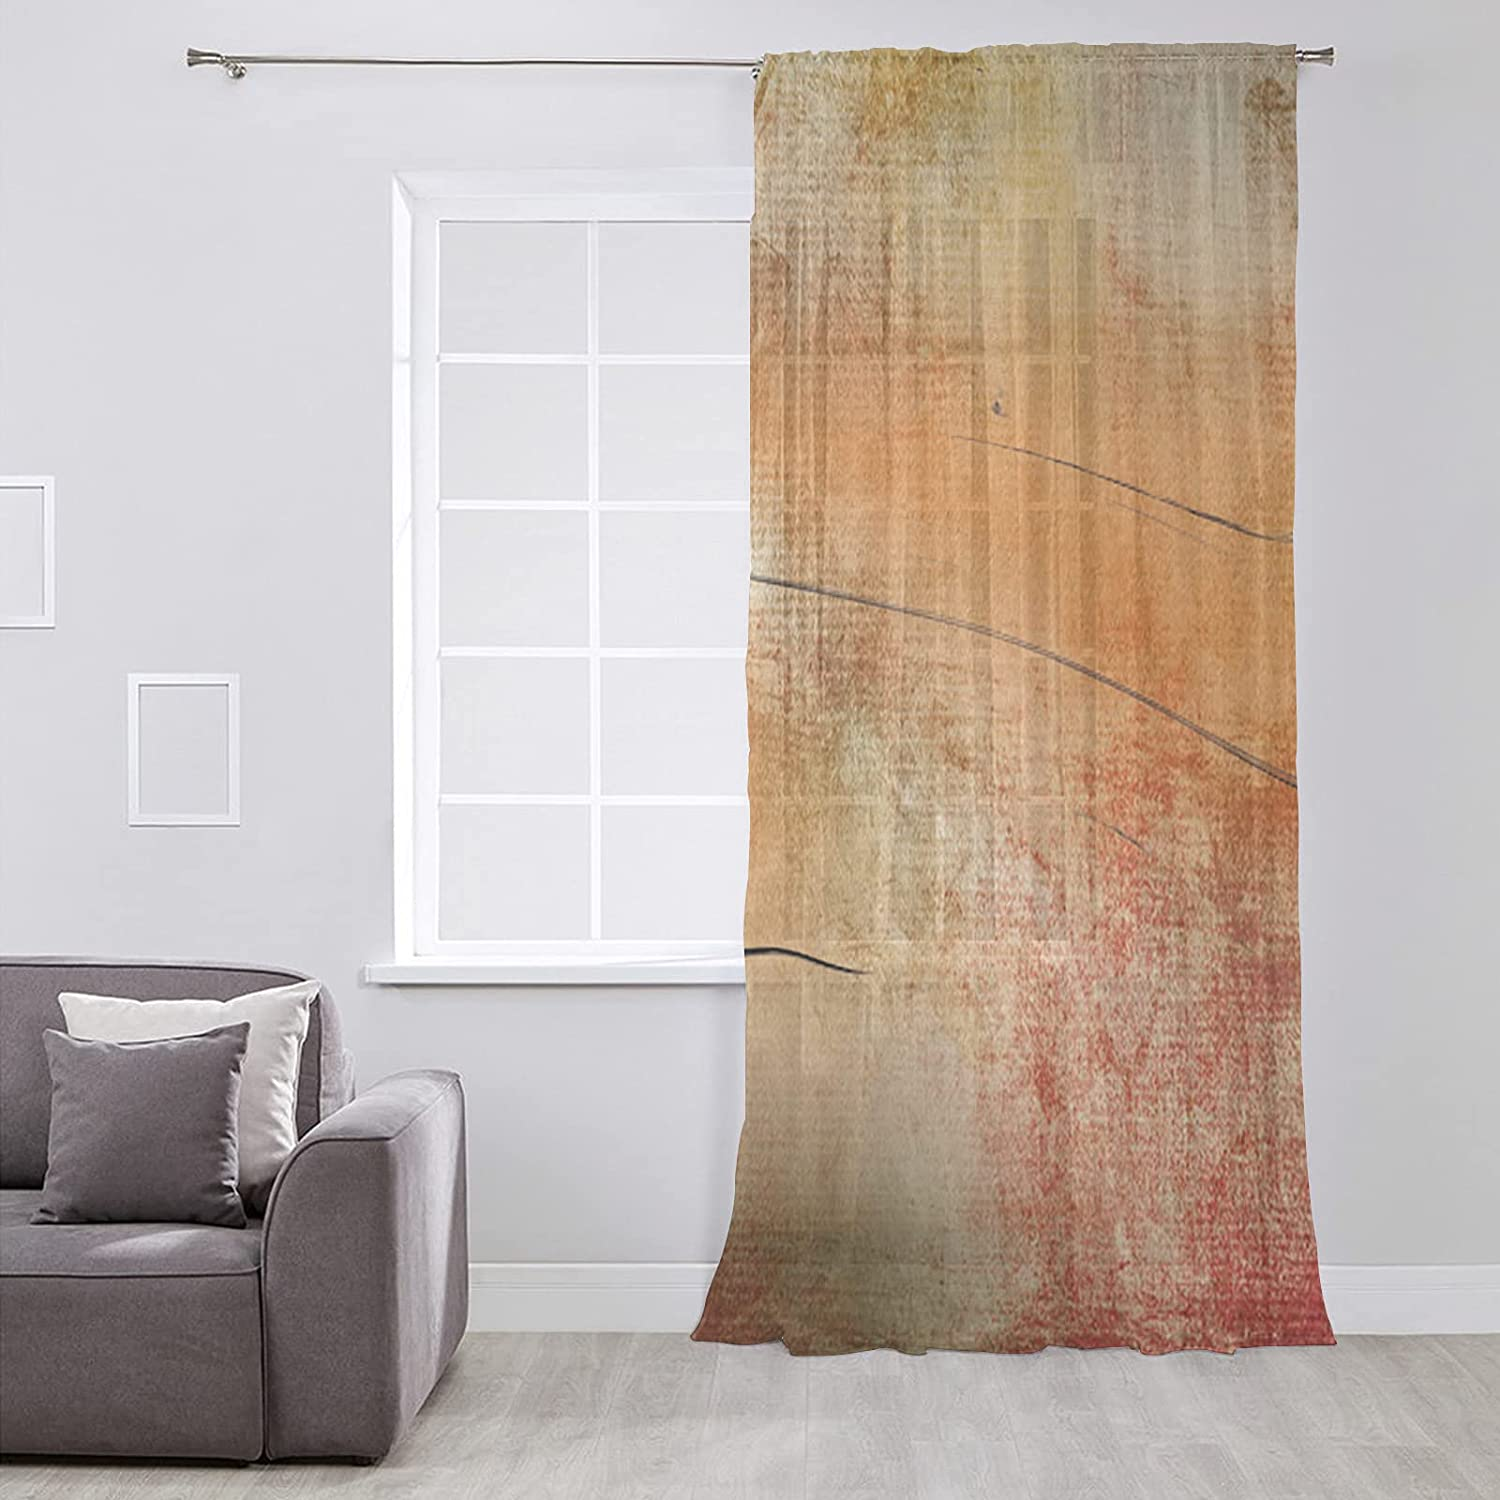 Semi Product Sheer Voile Window Curtain Long Inches Sale SALE% OFF Panel 52x84 Elegant